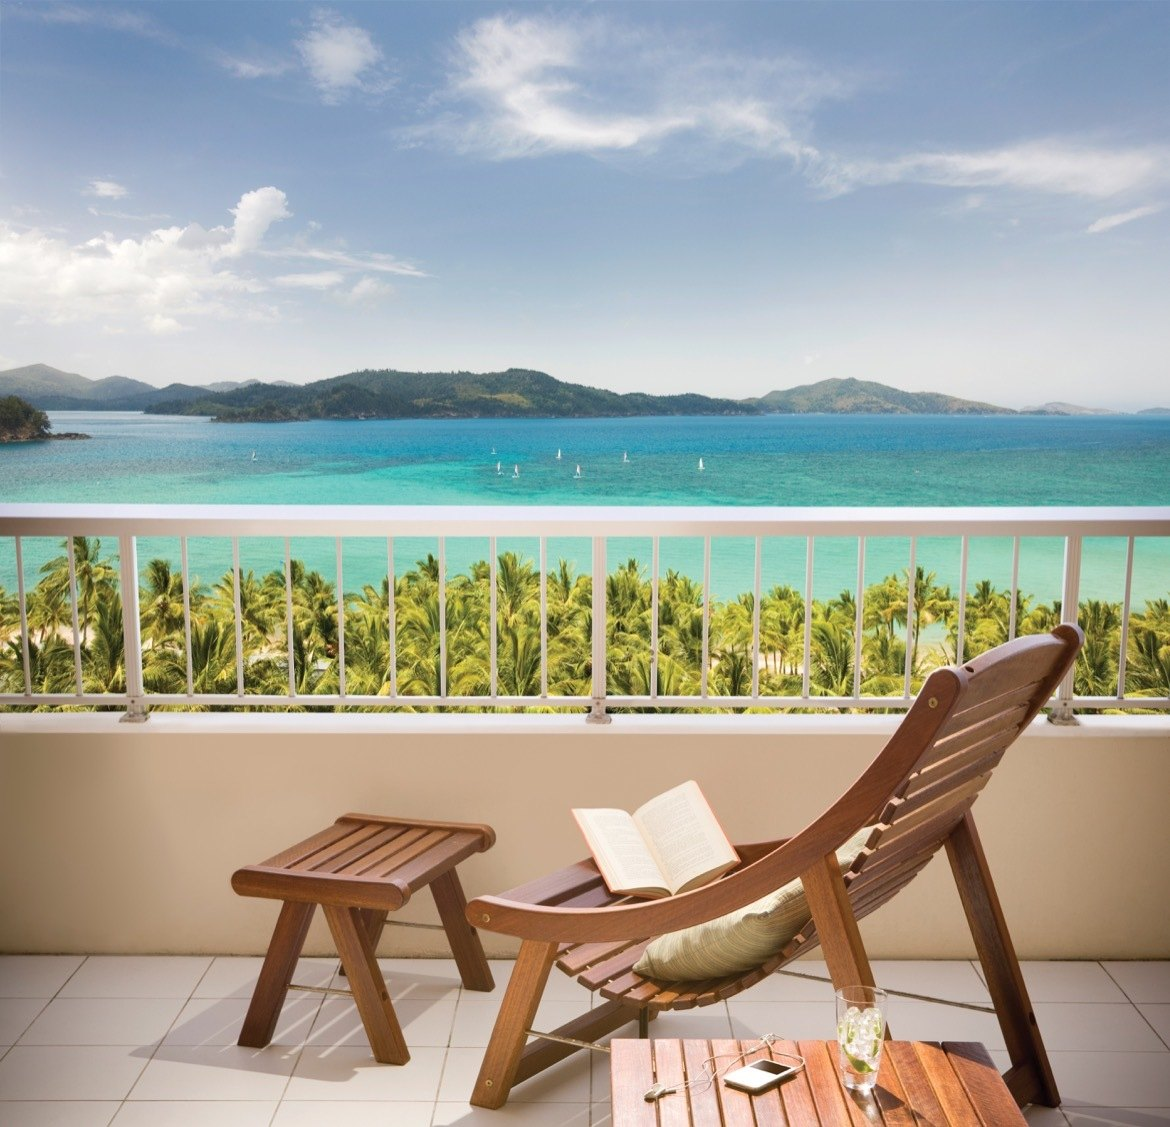 Hamilton Island: The Best Things To Do On Hamilton Island, Australia